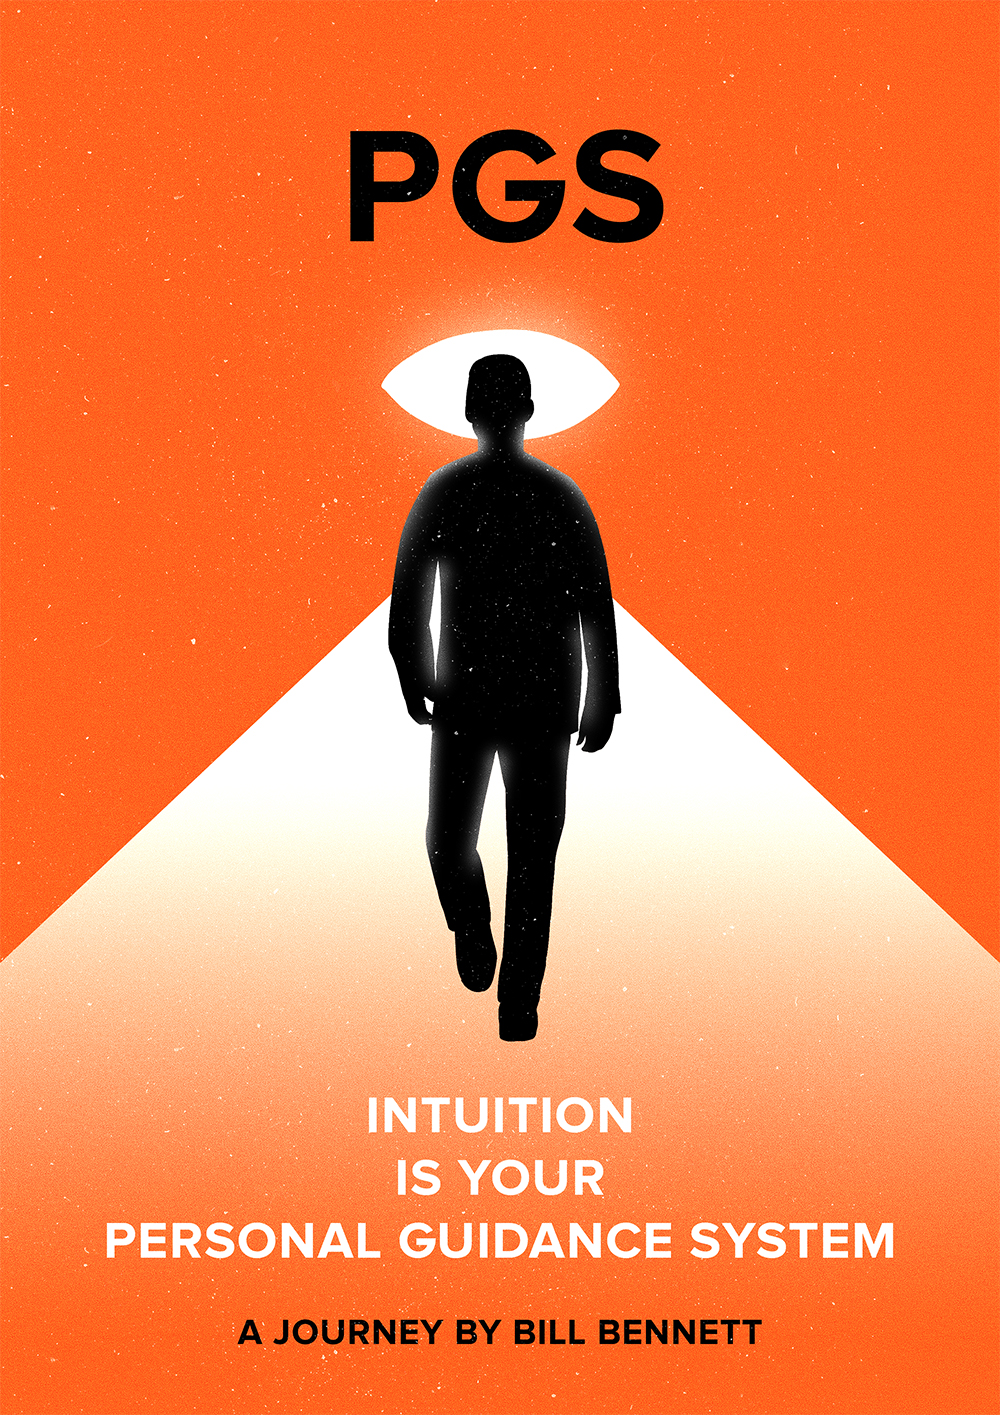 Announcing release of pgs the movie 444 pgs the way very powerful very engaging the first film to really show you how intuition works and how you can use it to lead a more fulfilling life biocorpaavc Choice Image